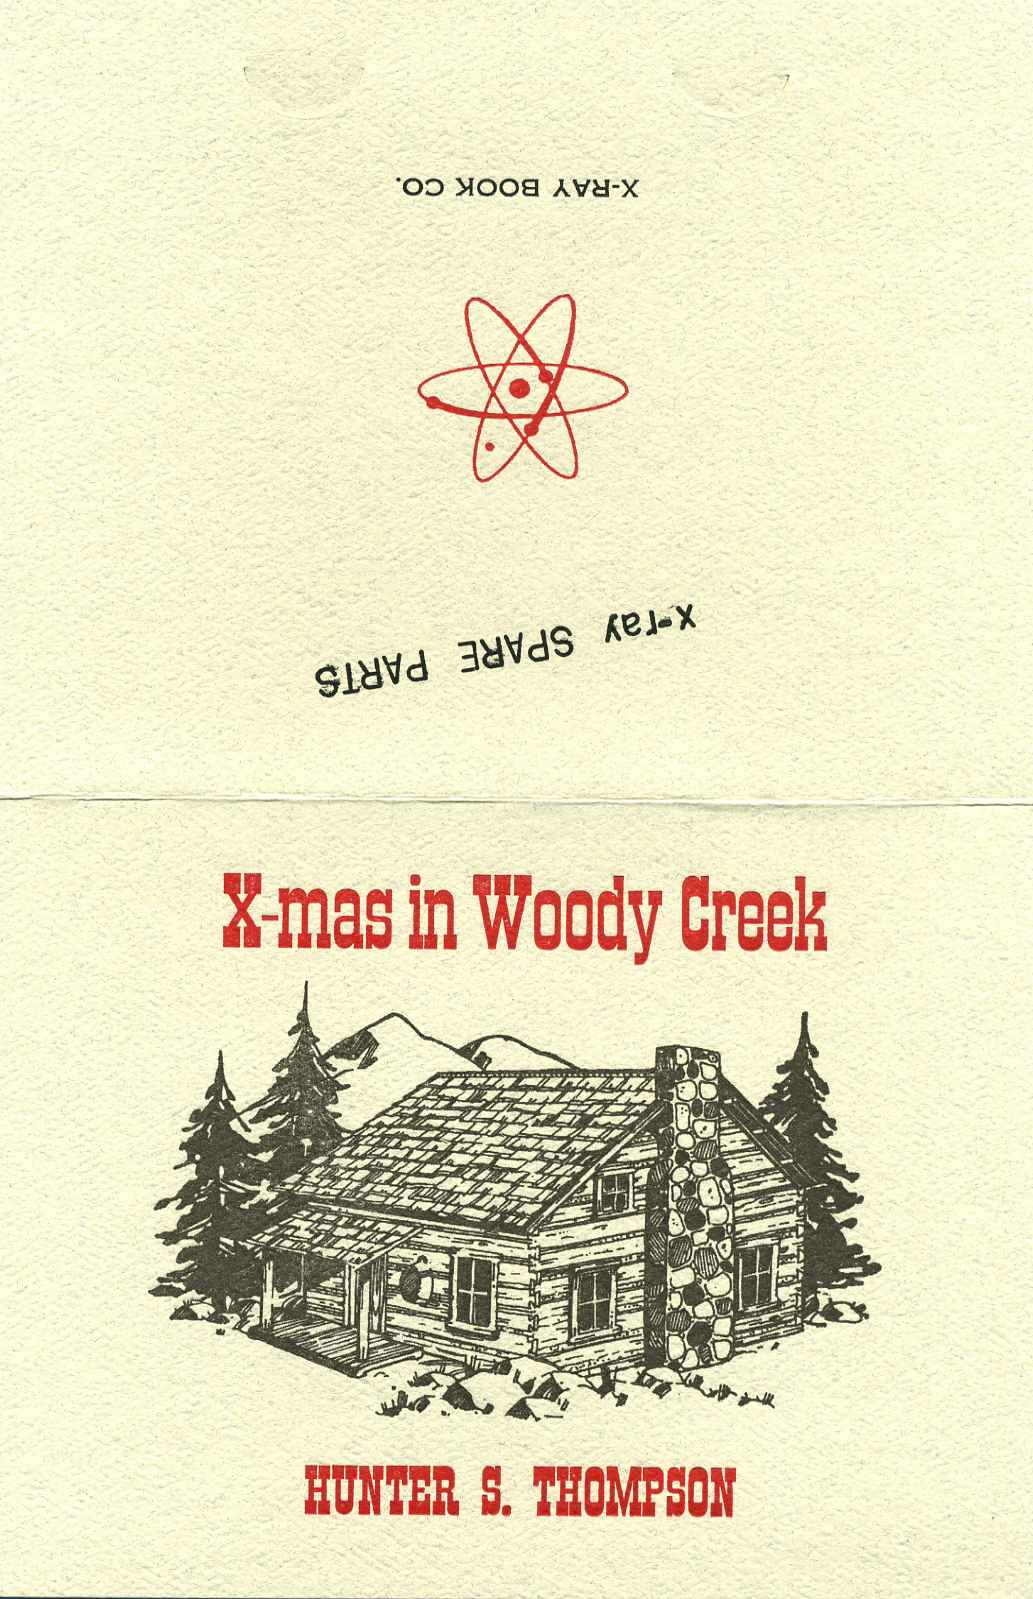 x mas in woody creek christmas card containing an original printed